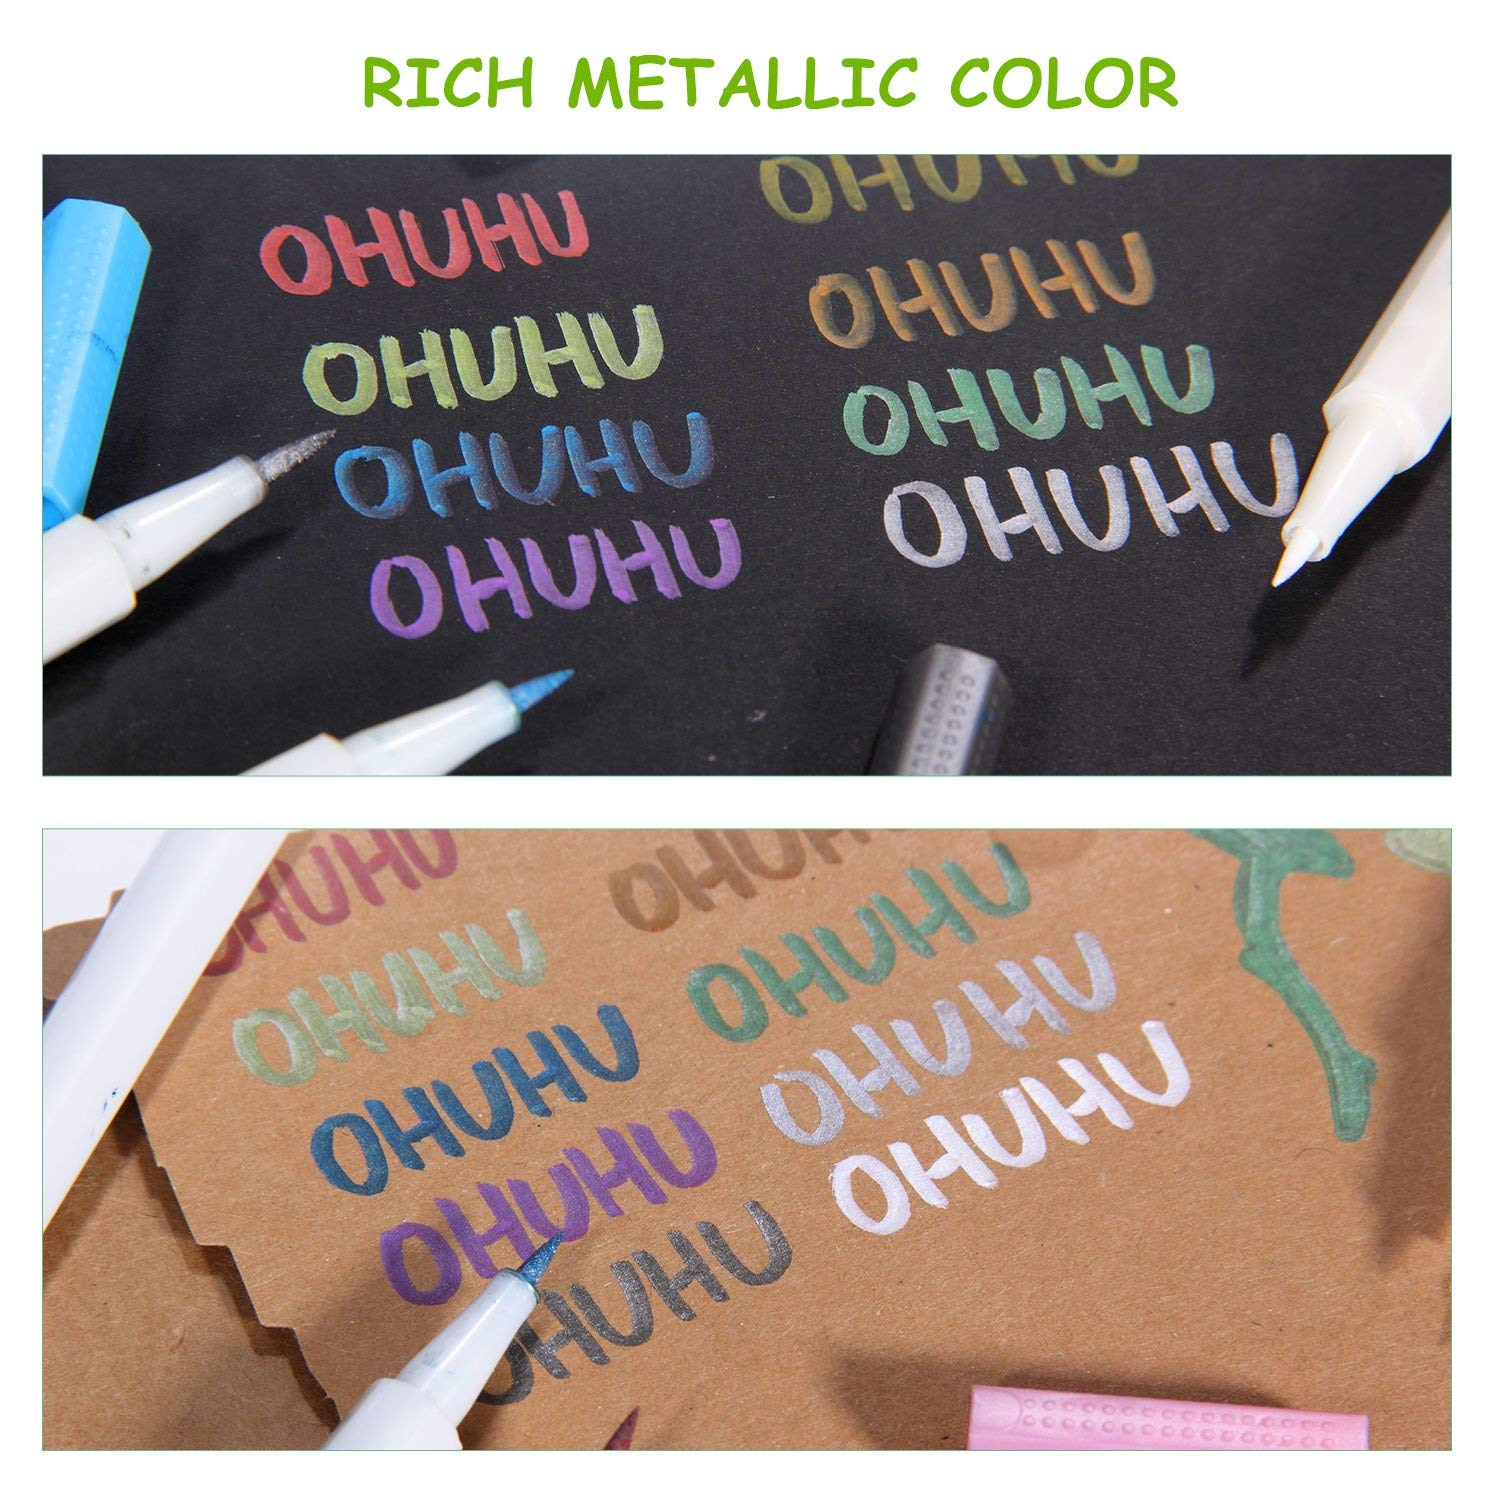 Metallic Markers Glitter Paint Pen Calligraphy Brush Pens, Ohuhu Set of 10 for DIY Birthday Greeting Gift Thank You Card, Scrapbook Photo Album, Rock Art Painting, Brush Tip Back to School Art Supply by Ohuhu (Image #7)